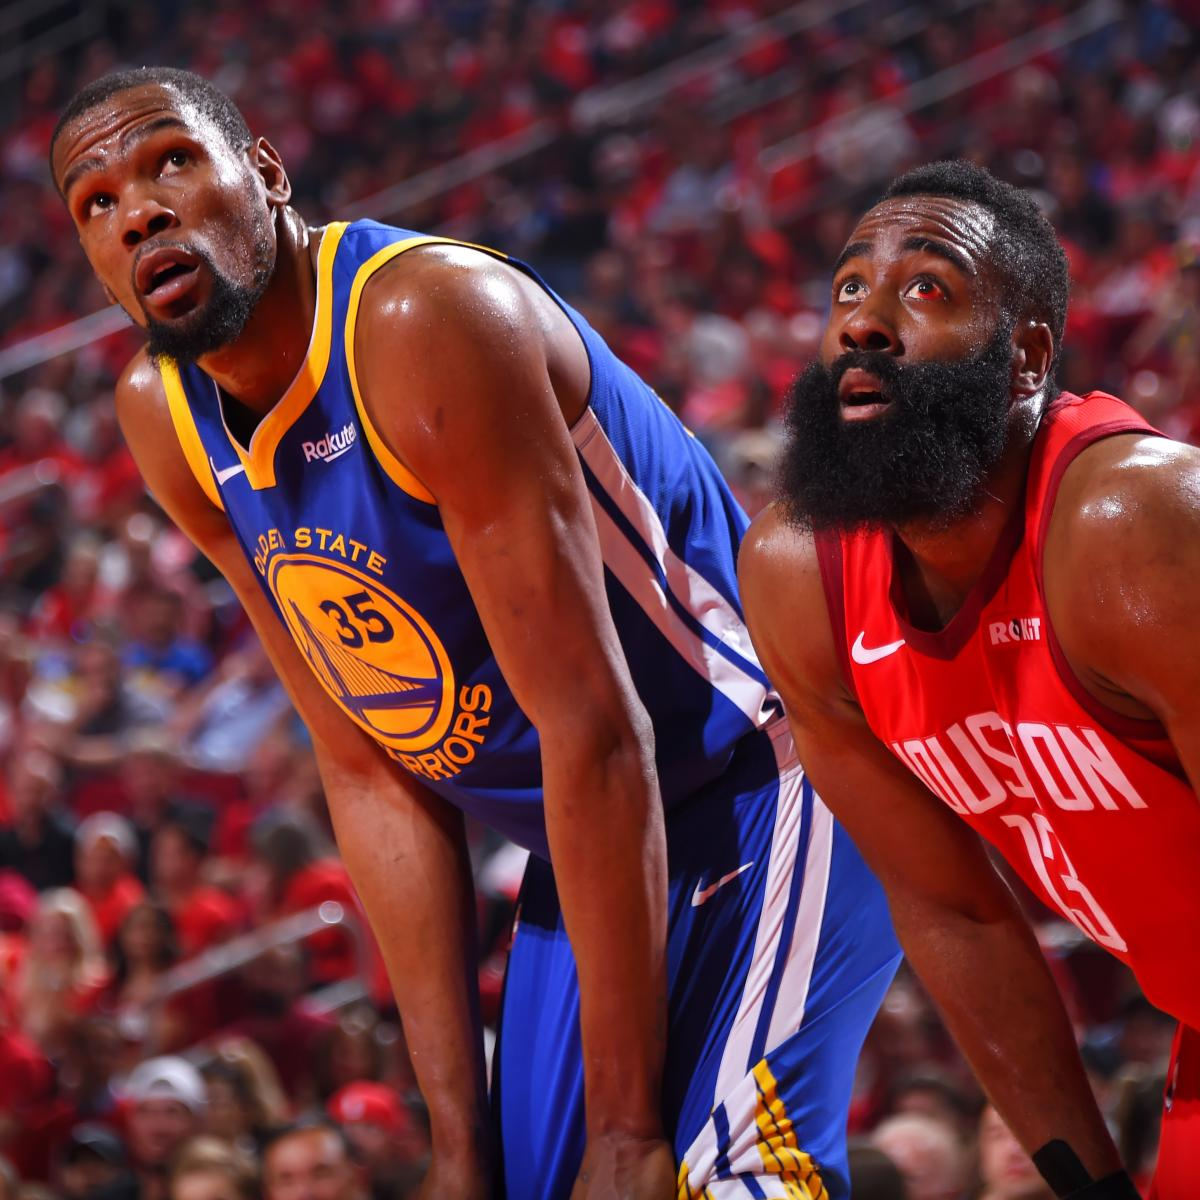 NBA Playoff Schedule 2019: Dates, TV Info For Remainder Of